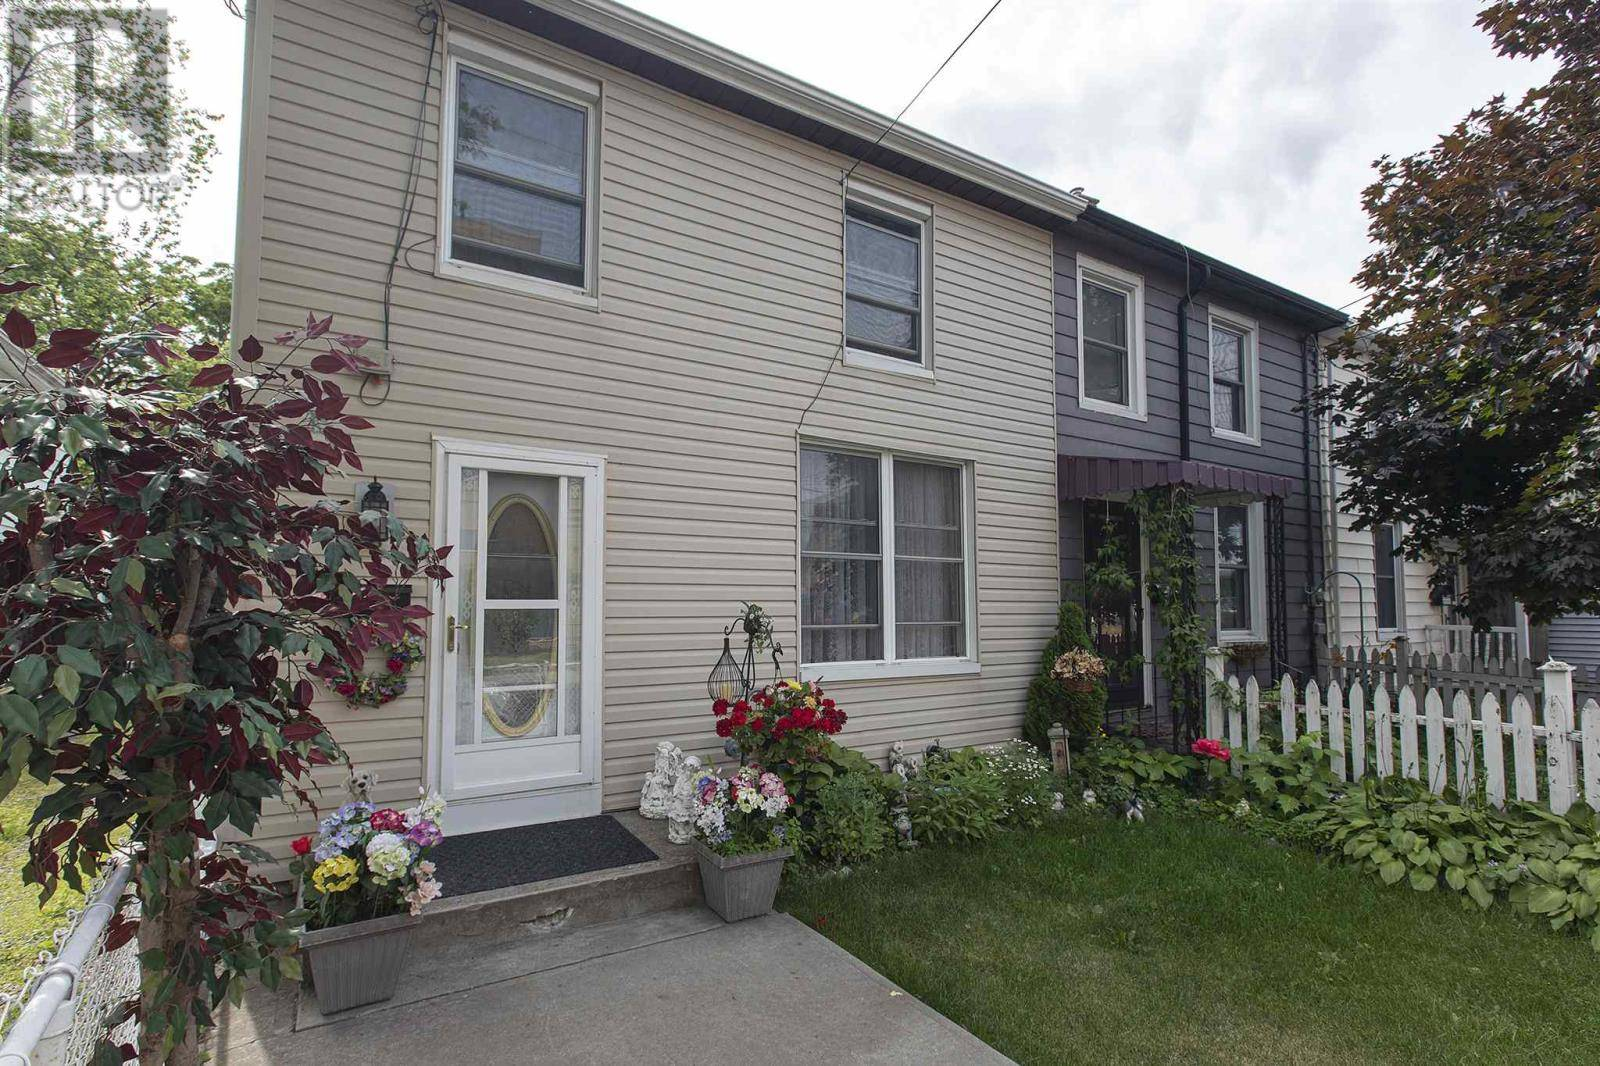 House for sale at 164 Rideau St Kingston Ontario - MLS: K19004780